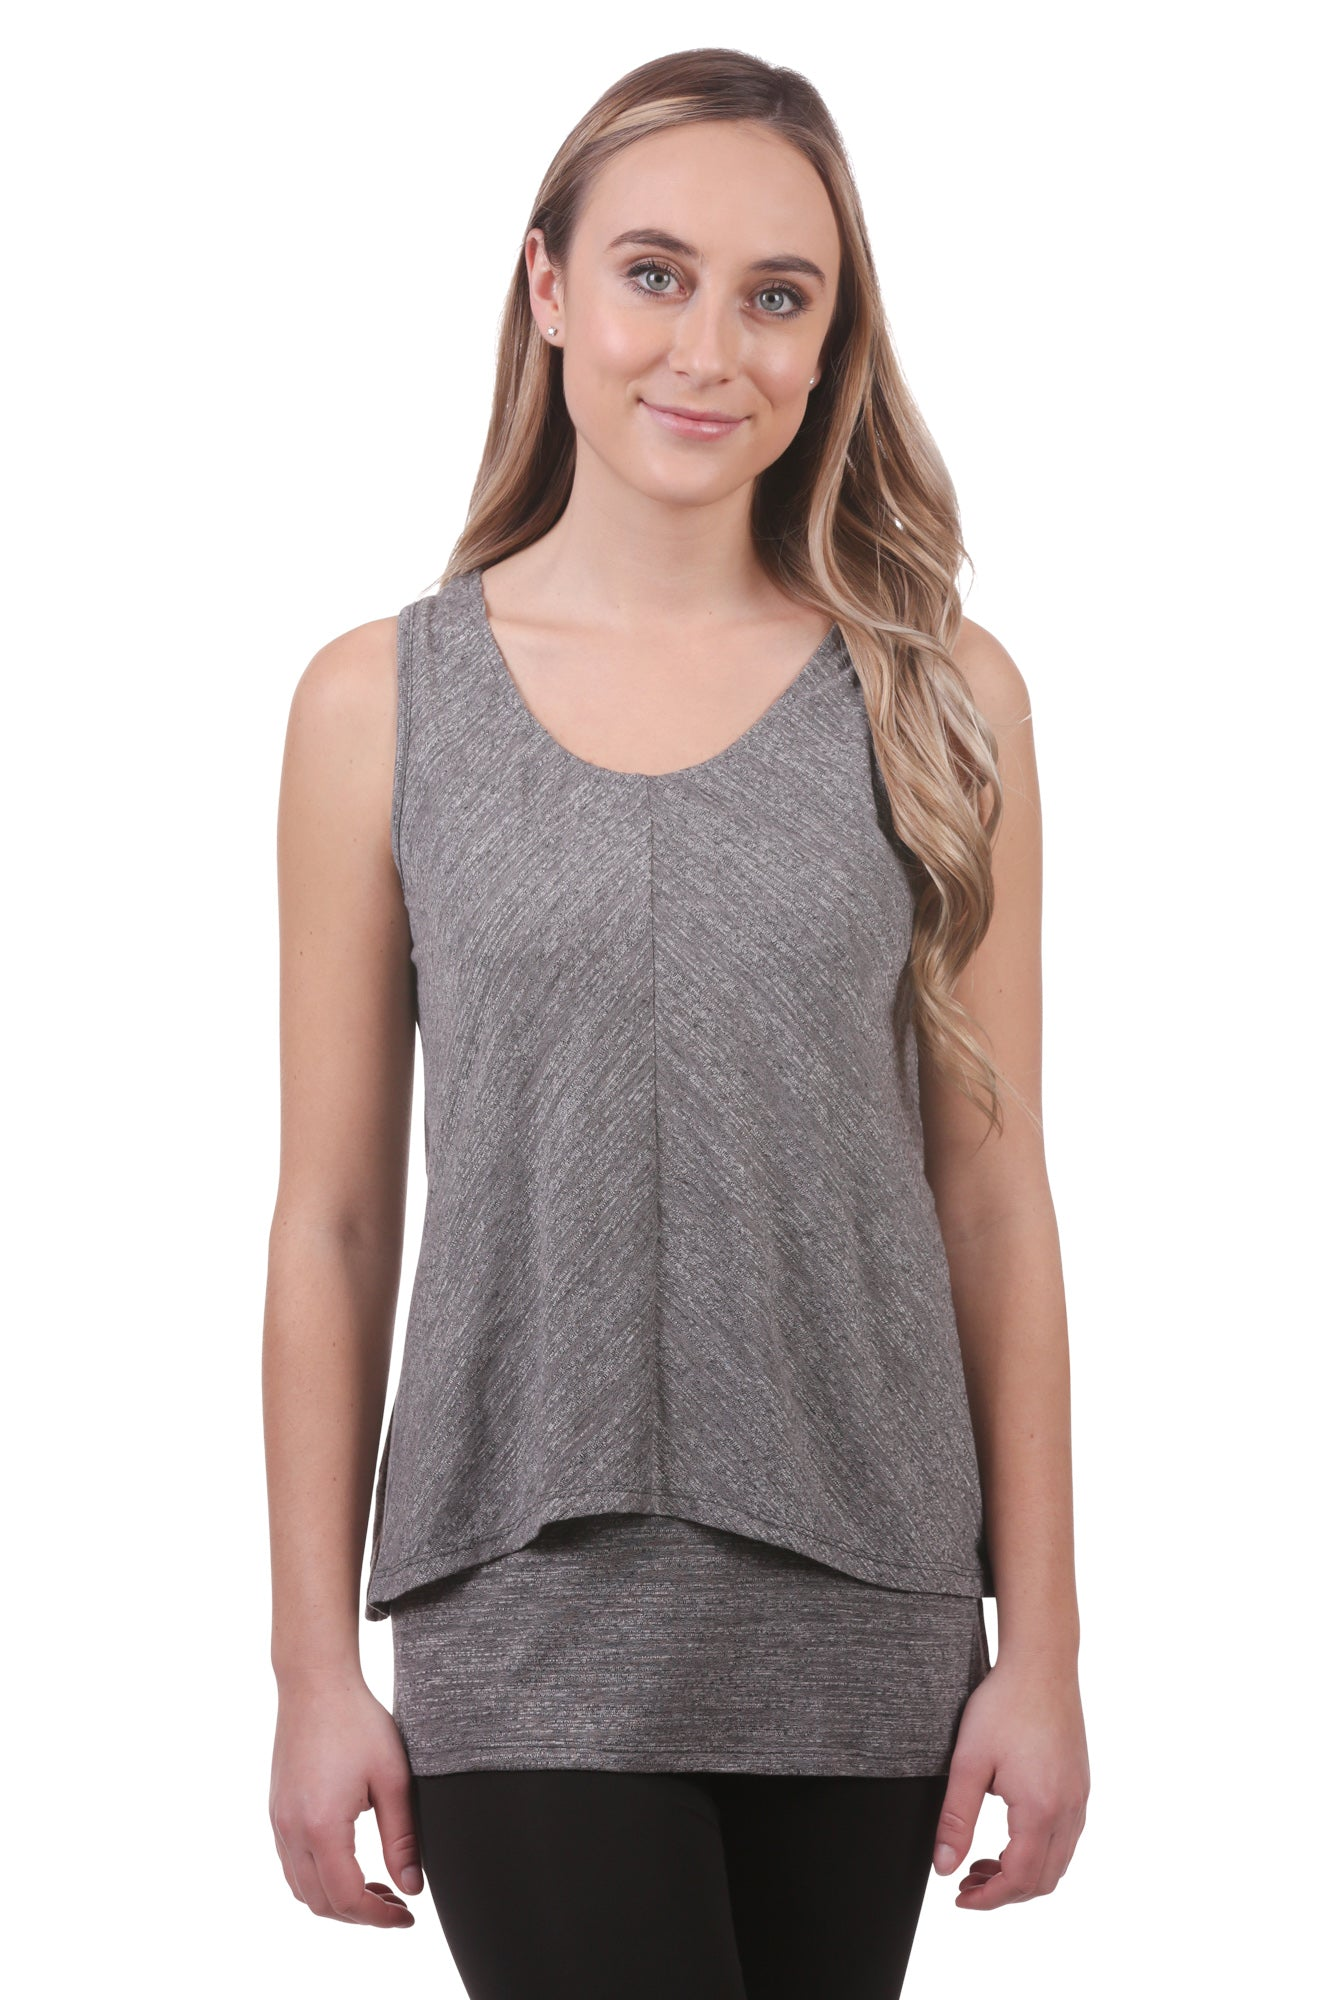 Women's Slub Double Layer Tunic | Grey Sleeveless Top | Neesha